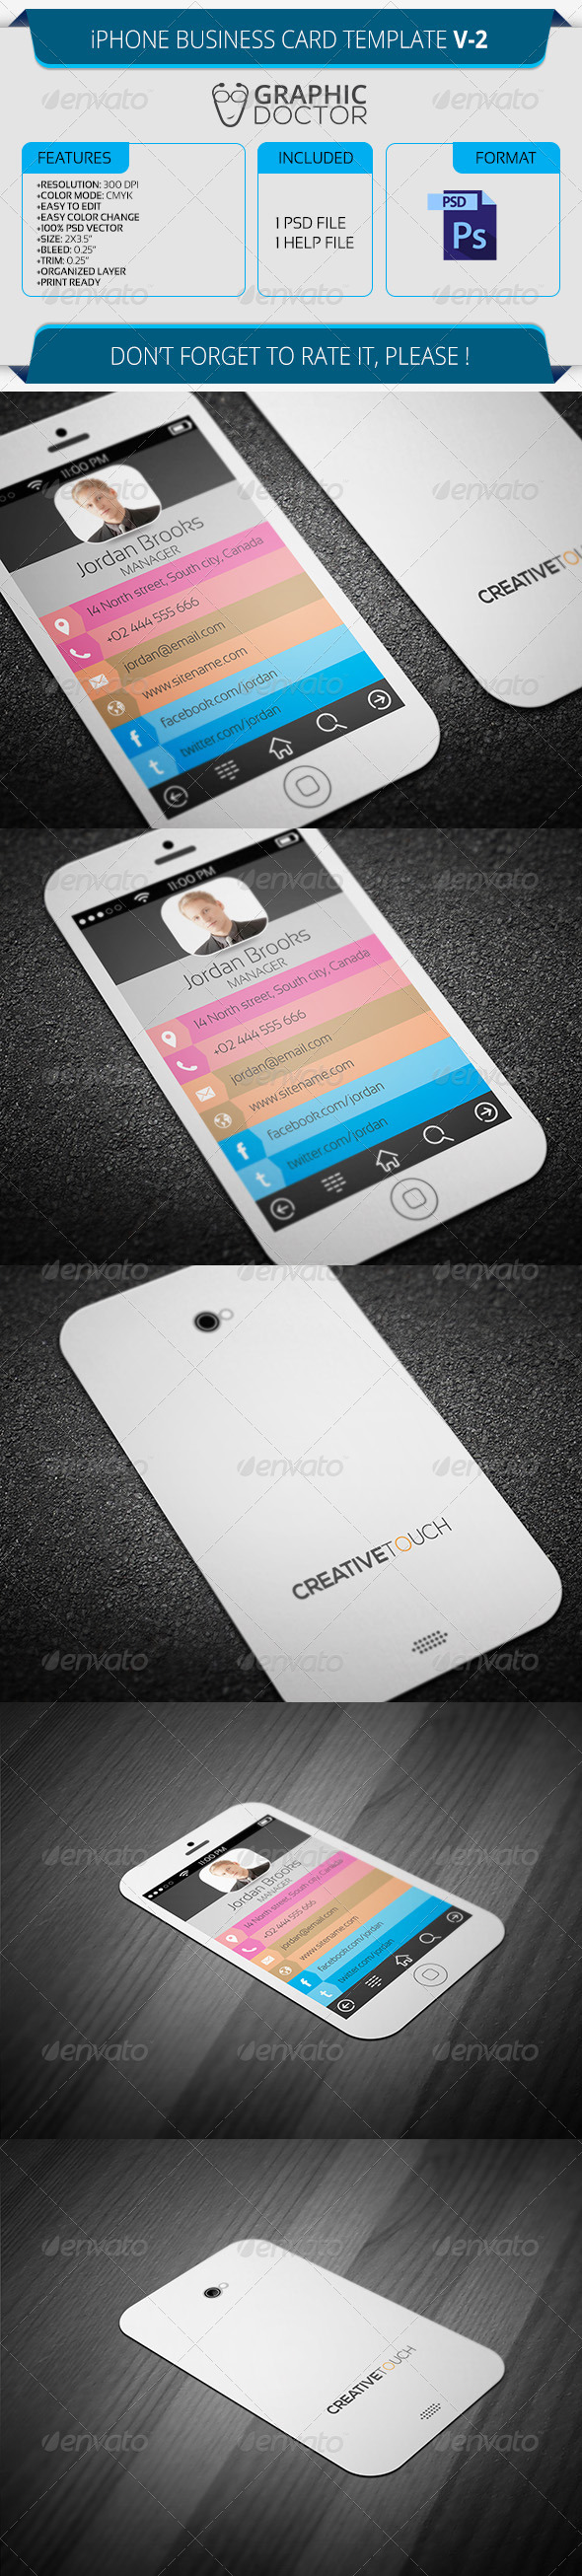 Iphone business card template v 2 graphicriver for Iphone business card template